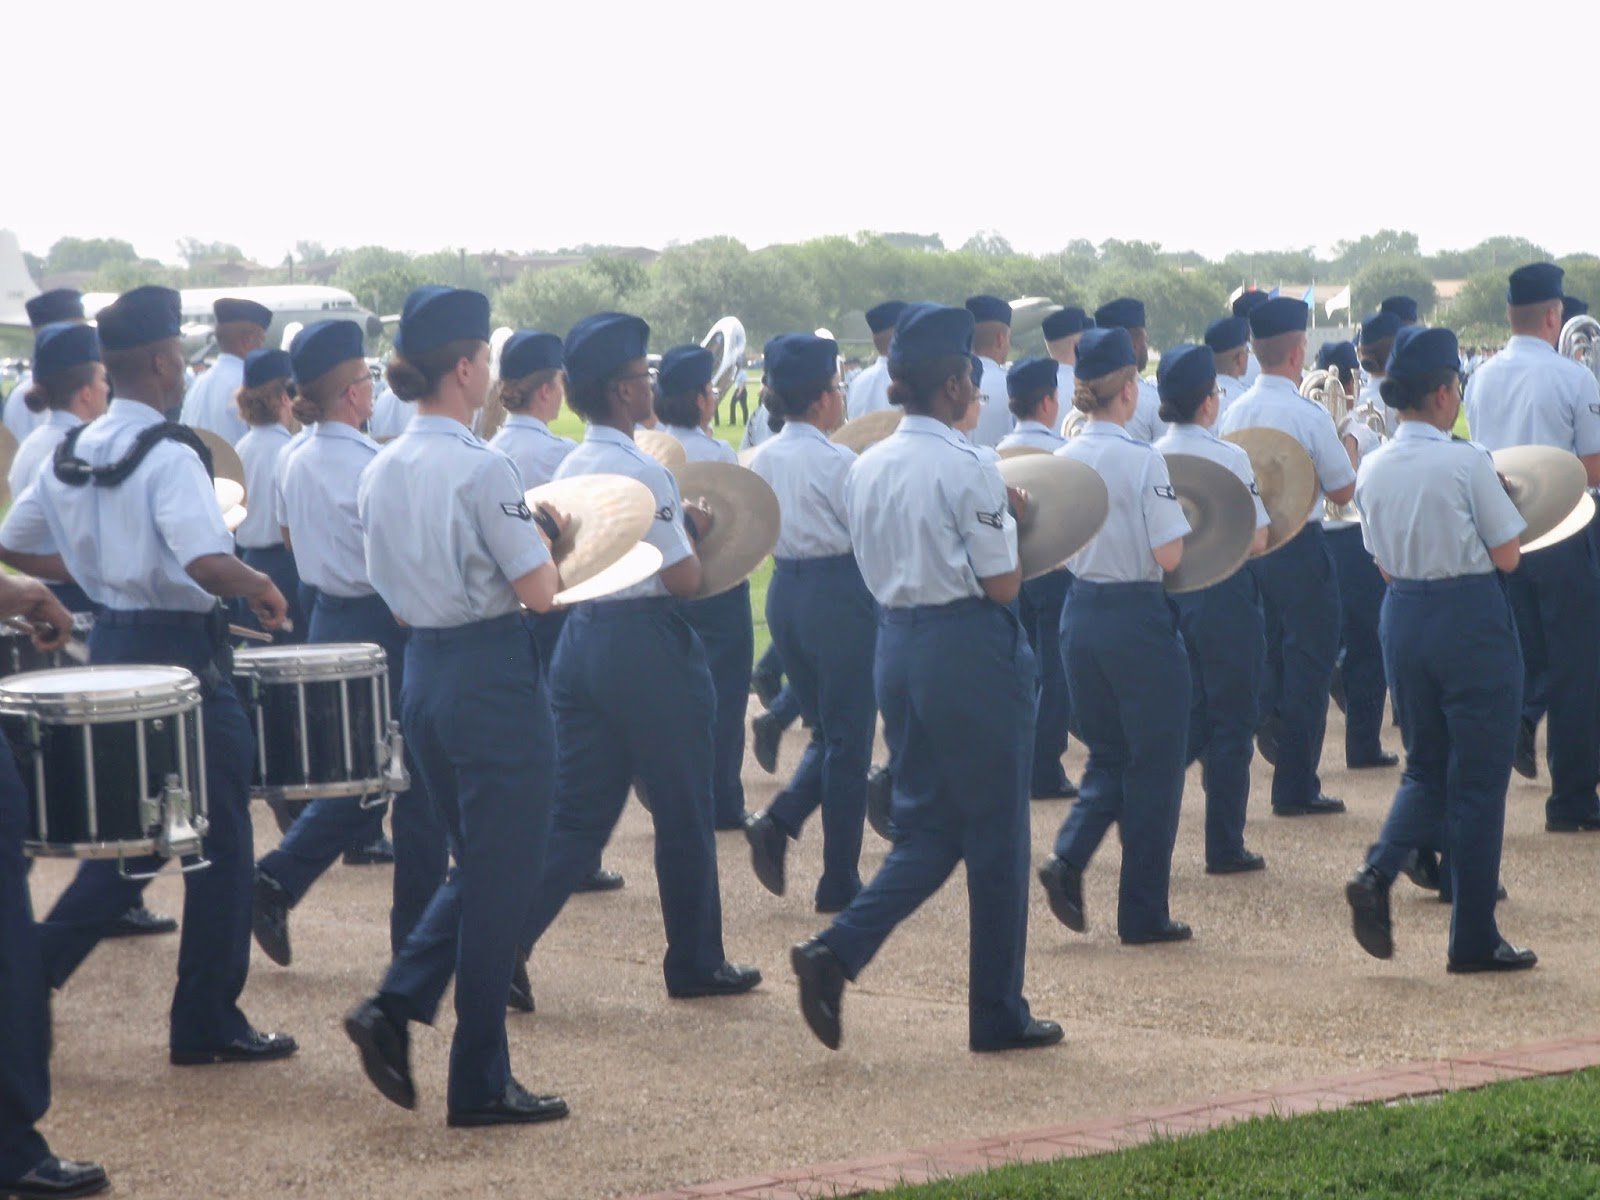 Air Force BMT Graduation Parade Band Flight